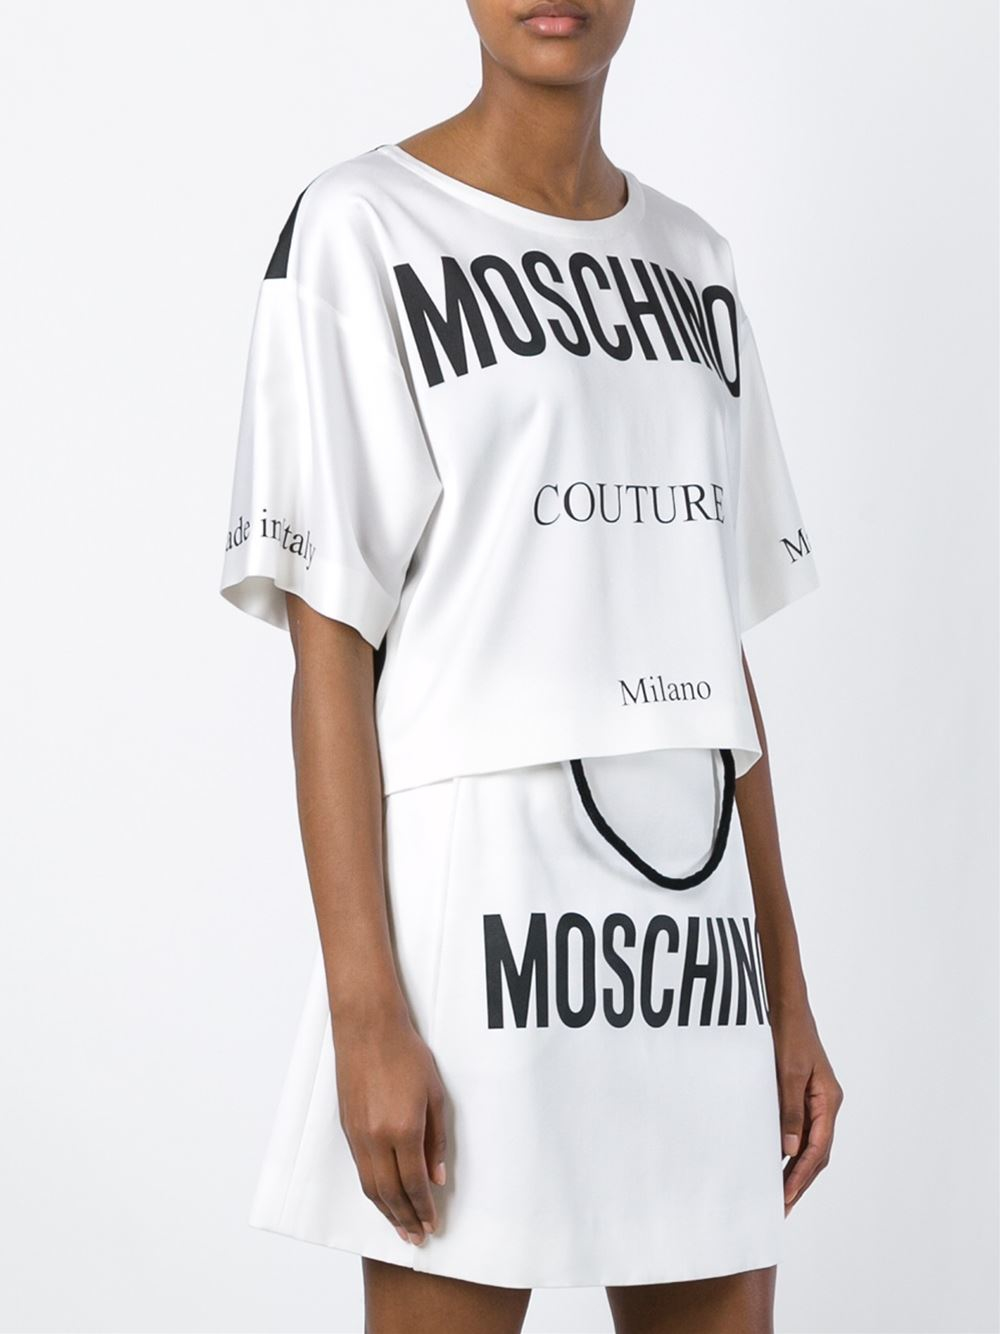 Lyst - Moschino Couture Print T-shirt in White